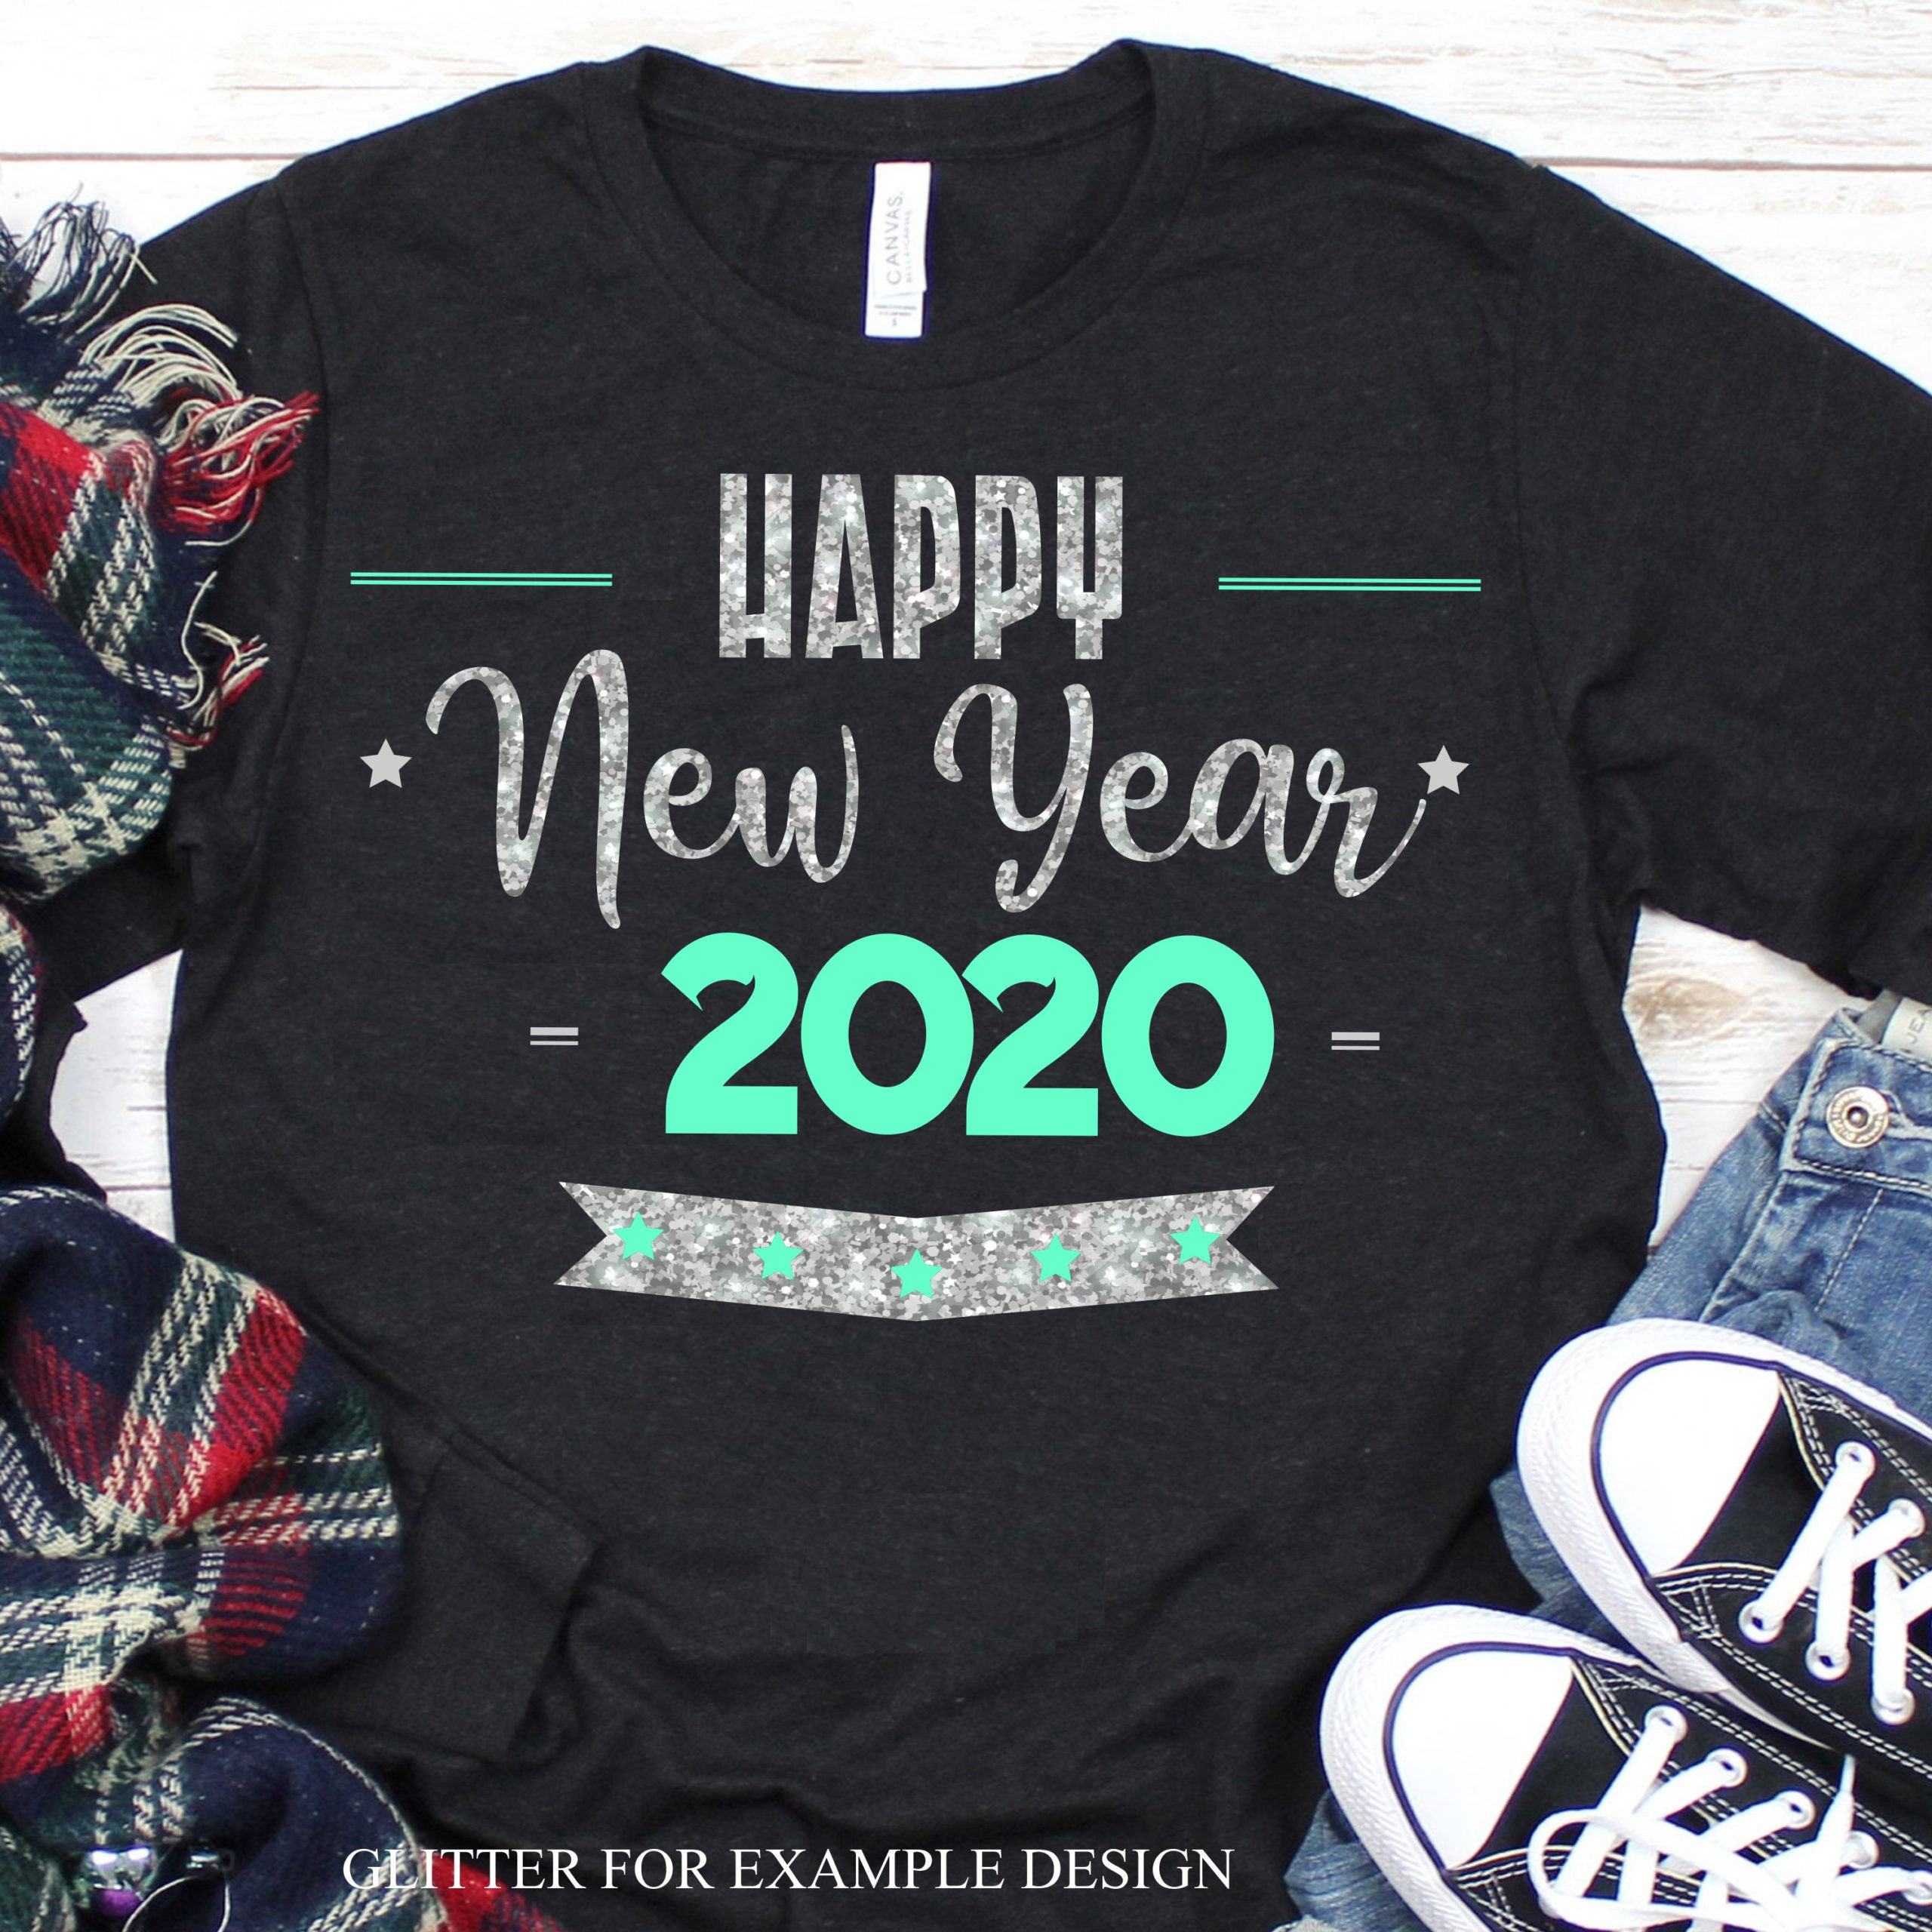 New-year-banner-svgnew-year-svghot-mess-svghappy-new-year-svgnew-year-shirt-svgnew-year-tshirtsvg-for-cricut2020-happy-new-year-svg-5e220feb